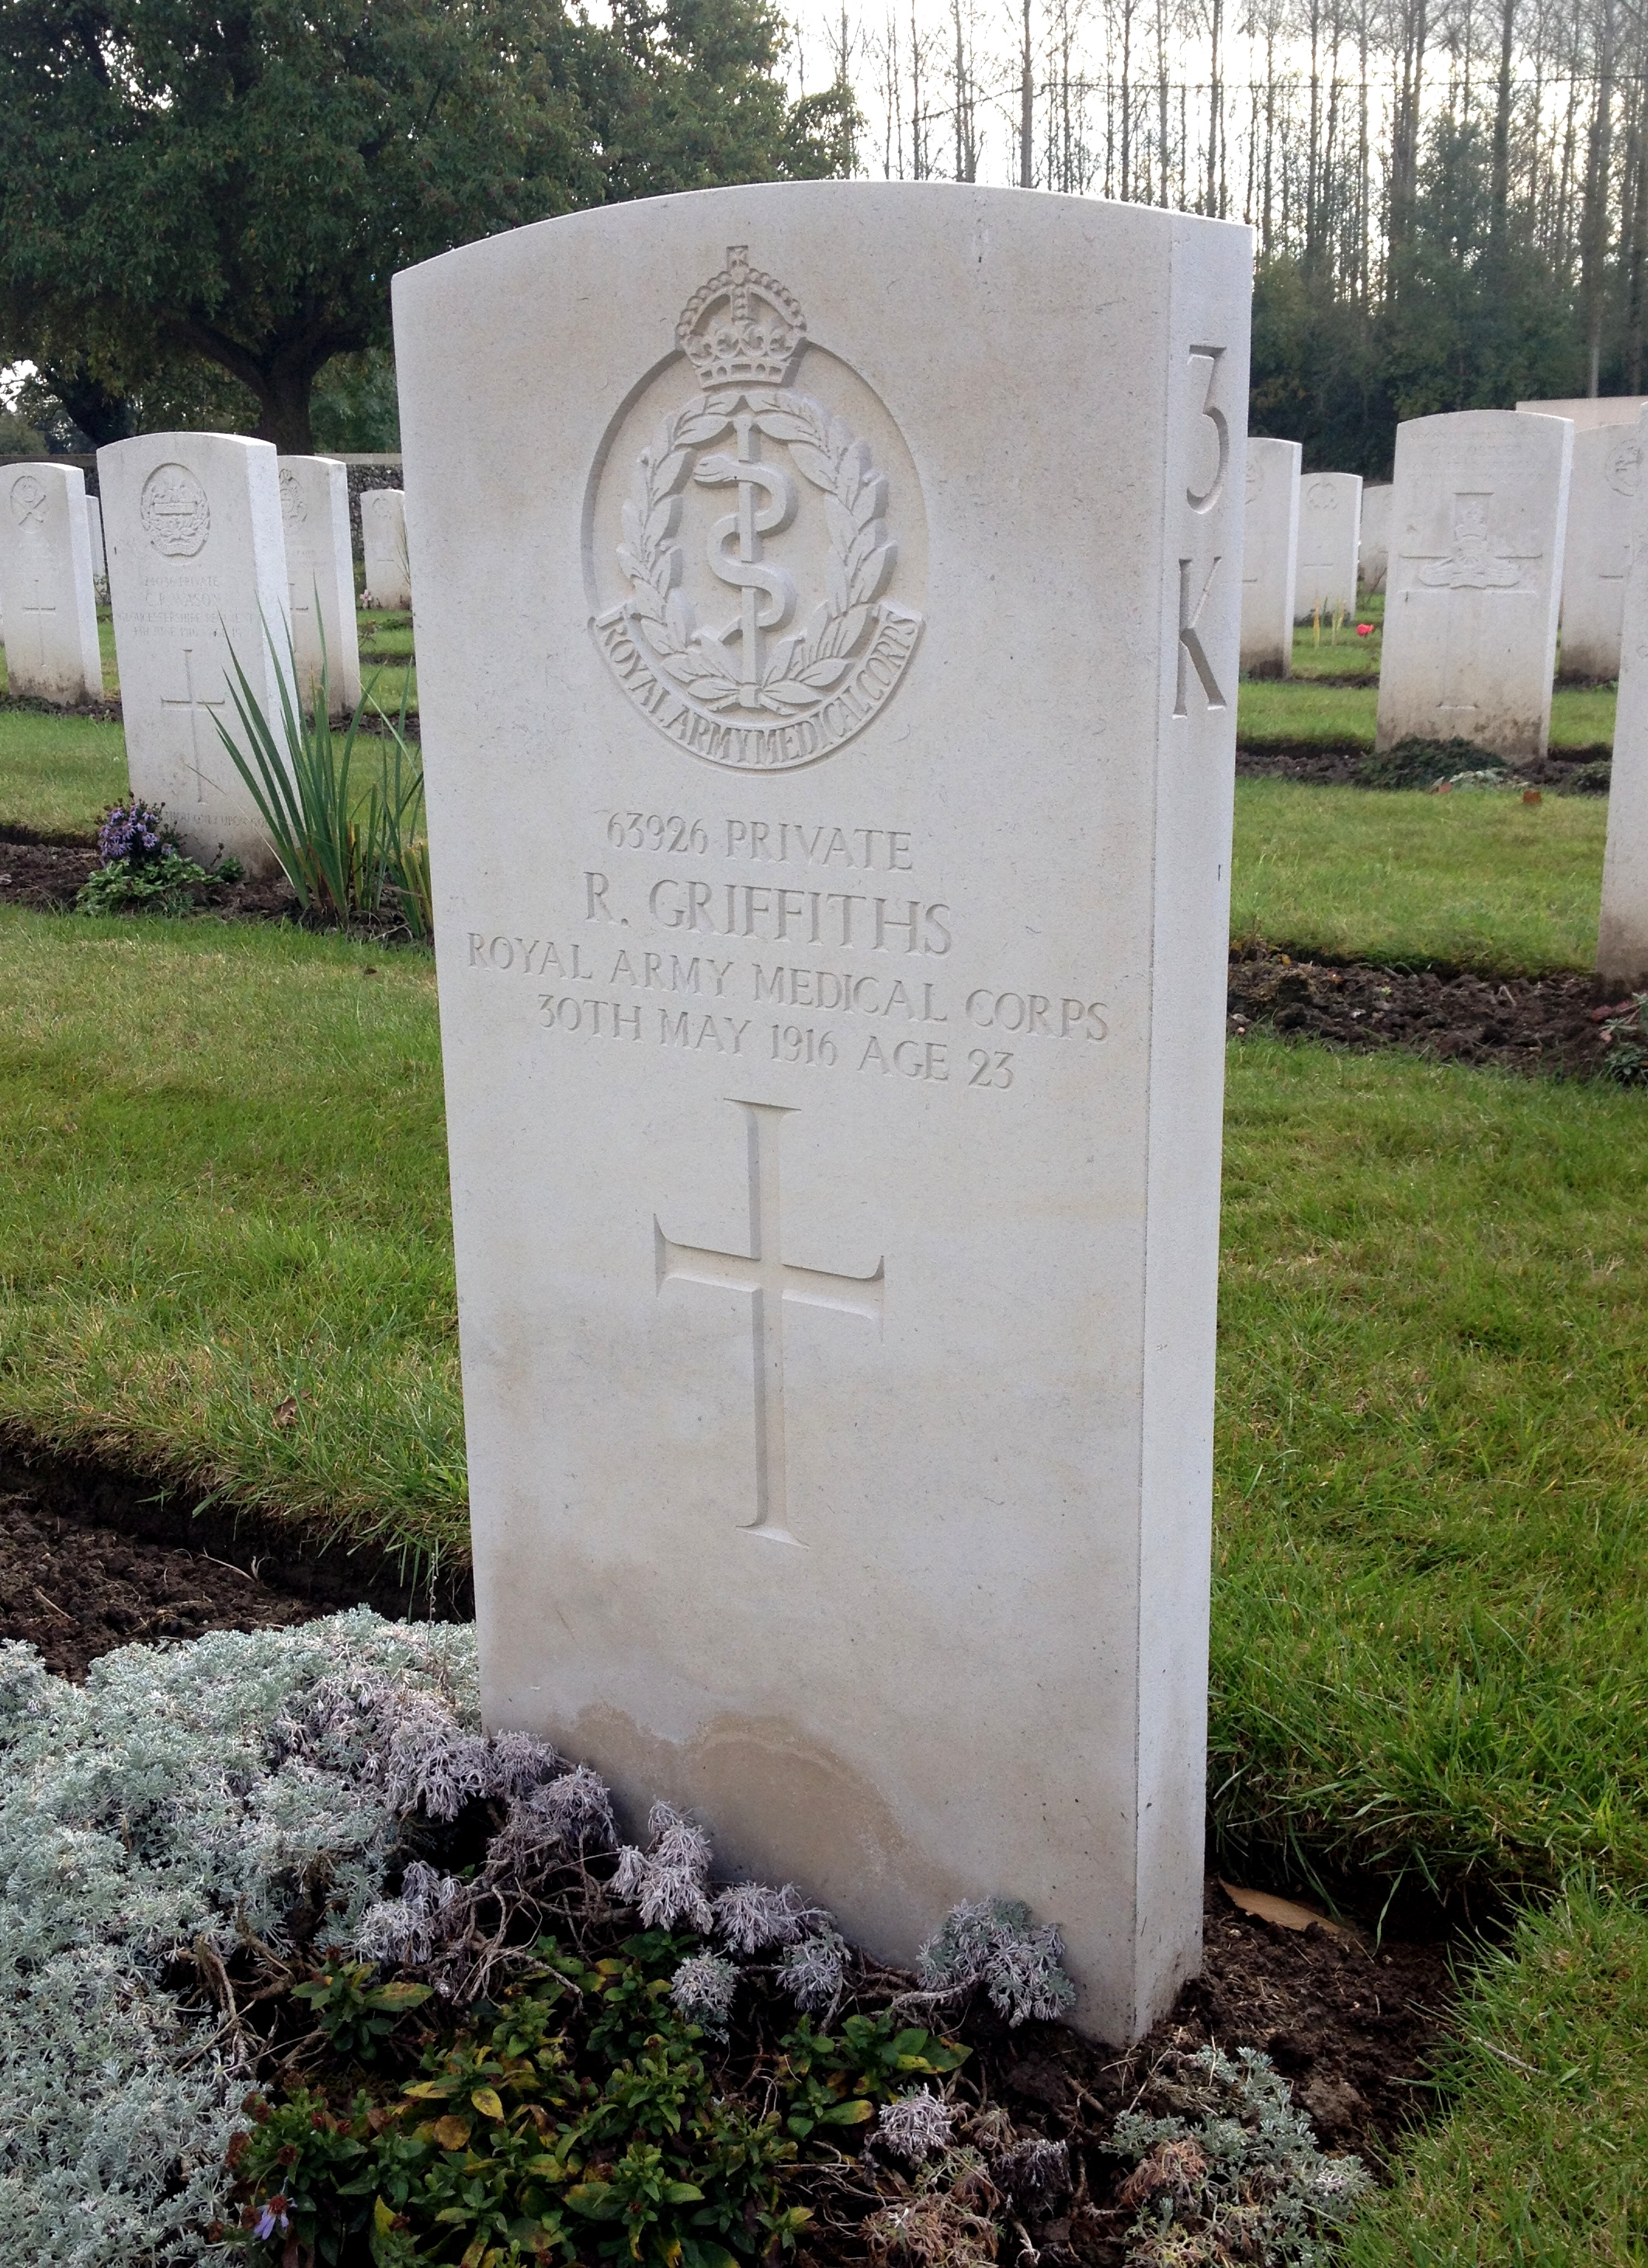 Grave of Pte Rhys Griffiths, 106 Field Ambulance RAMC at St. Vaast Post Military Cemetery, Richebourg L'Avoué